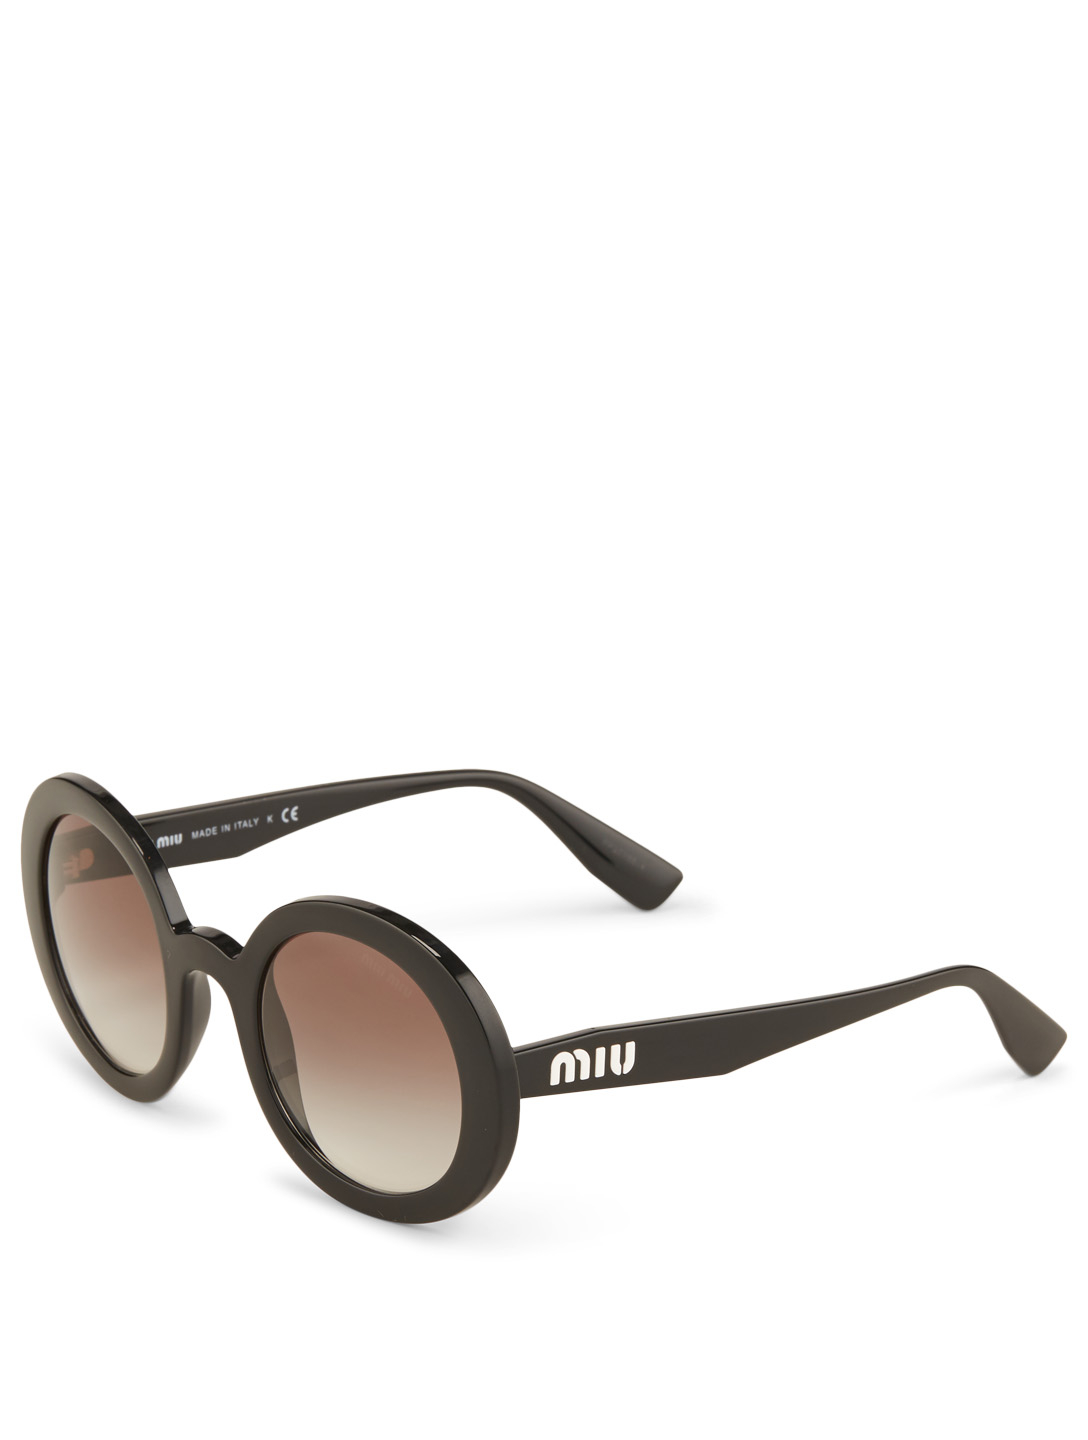 MIU MIU Round Sunglasses Women's Black